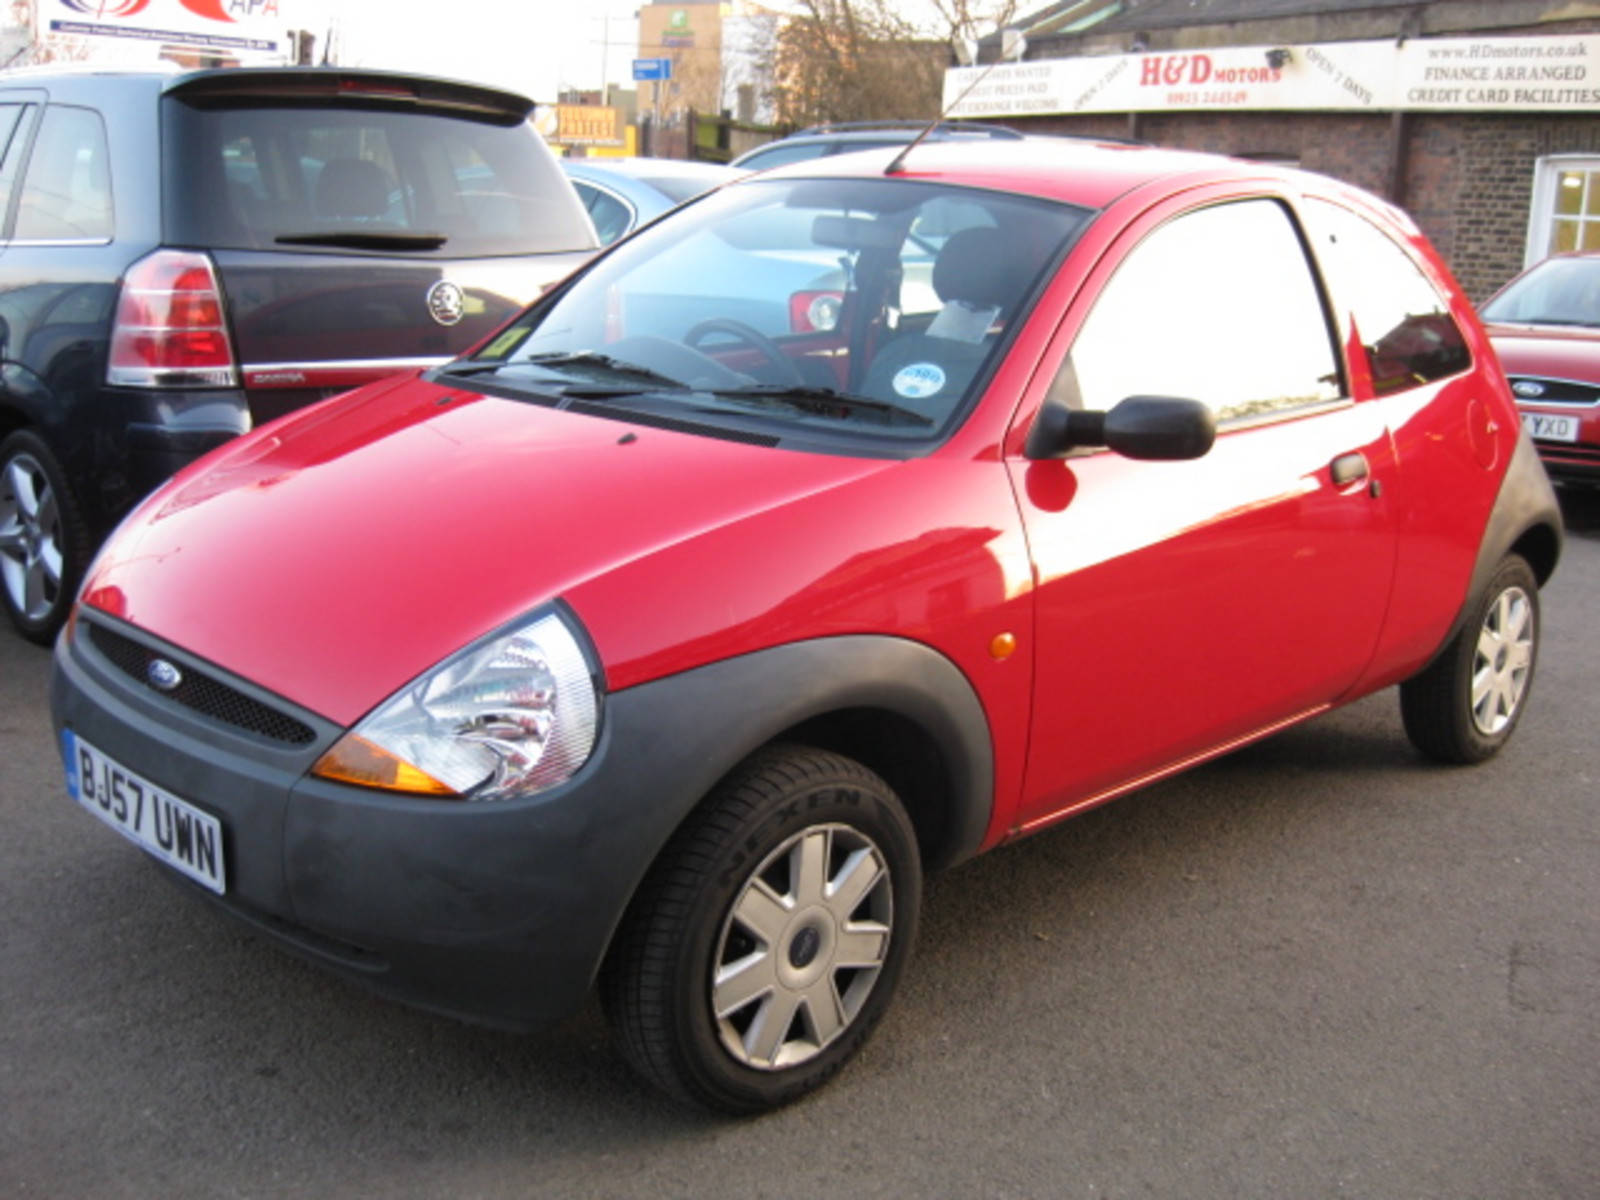 Ford Ka 1.3 Studio Hatchback Petrol Red